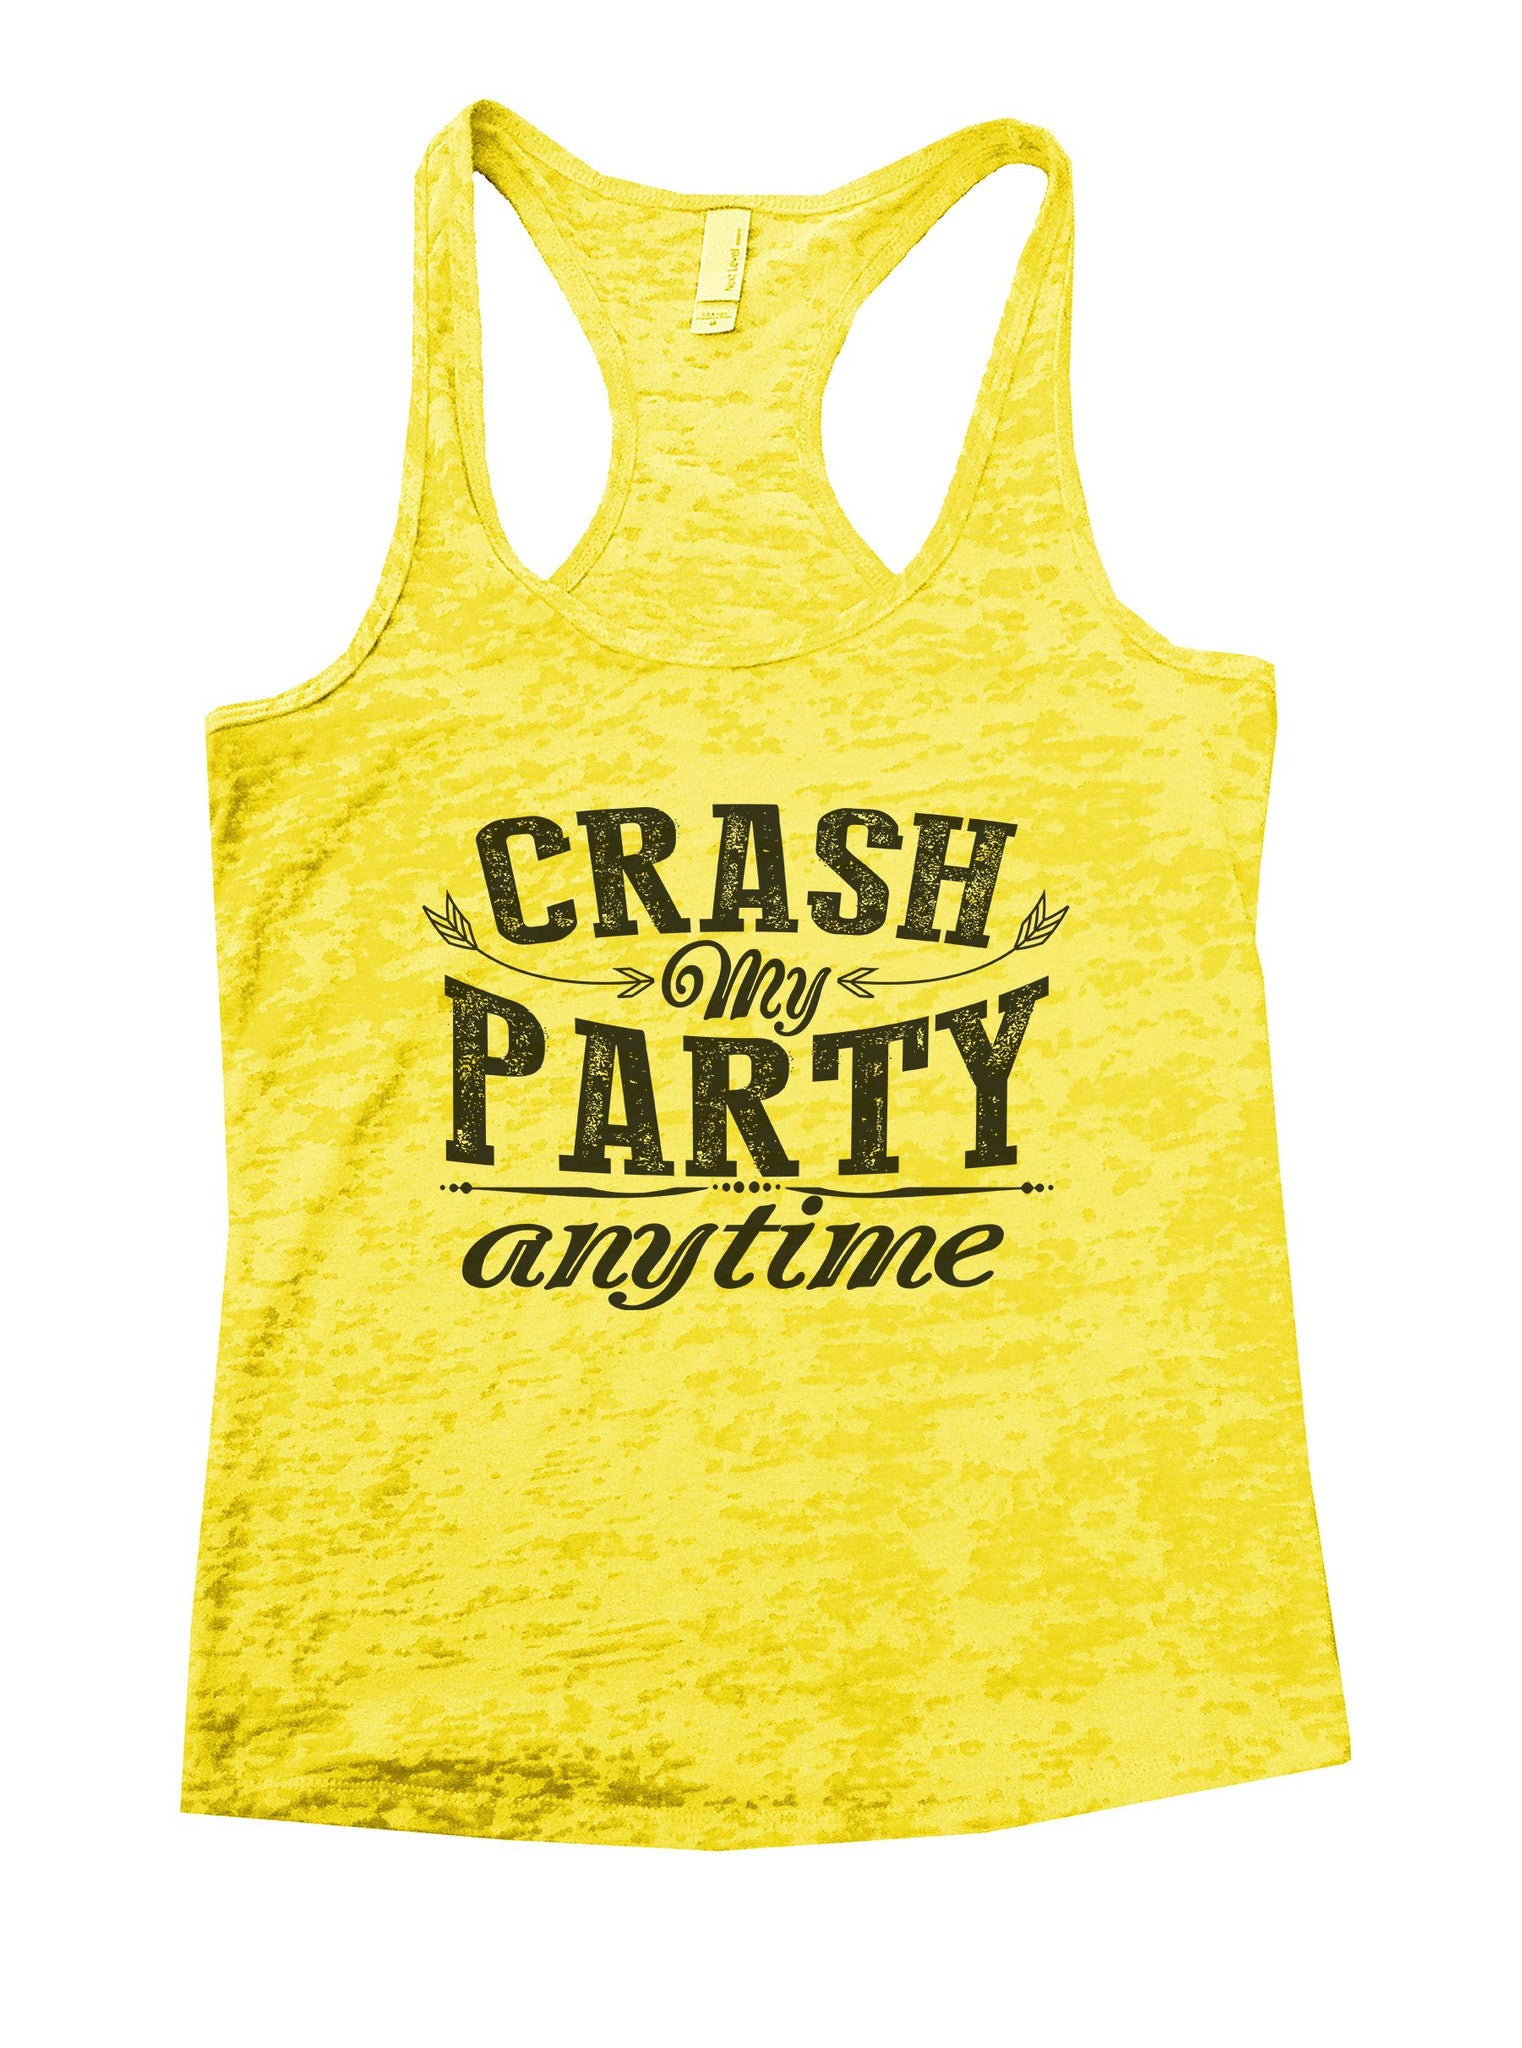 Crash My Party Anytime Burnout Tank Top By BurnoutTankTops.com - 980 - Funny Shirts Tank Tops Burnouts and Triblends  - 7